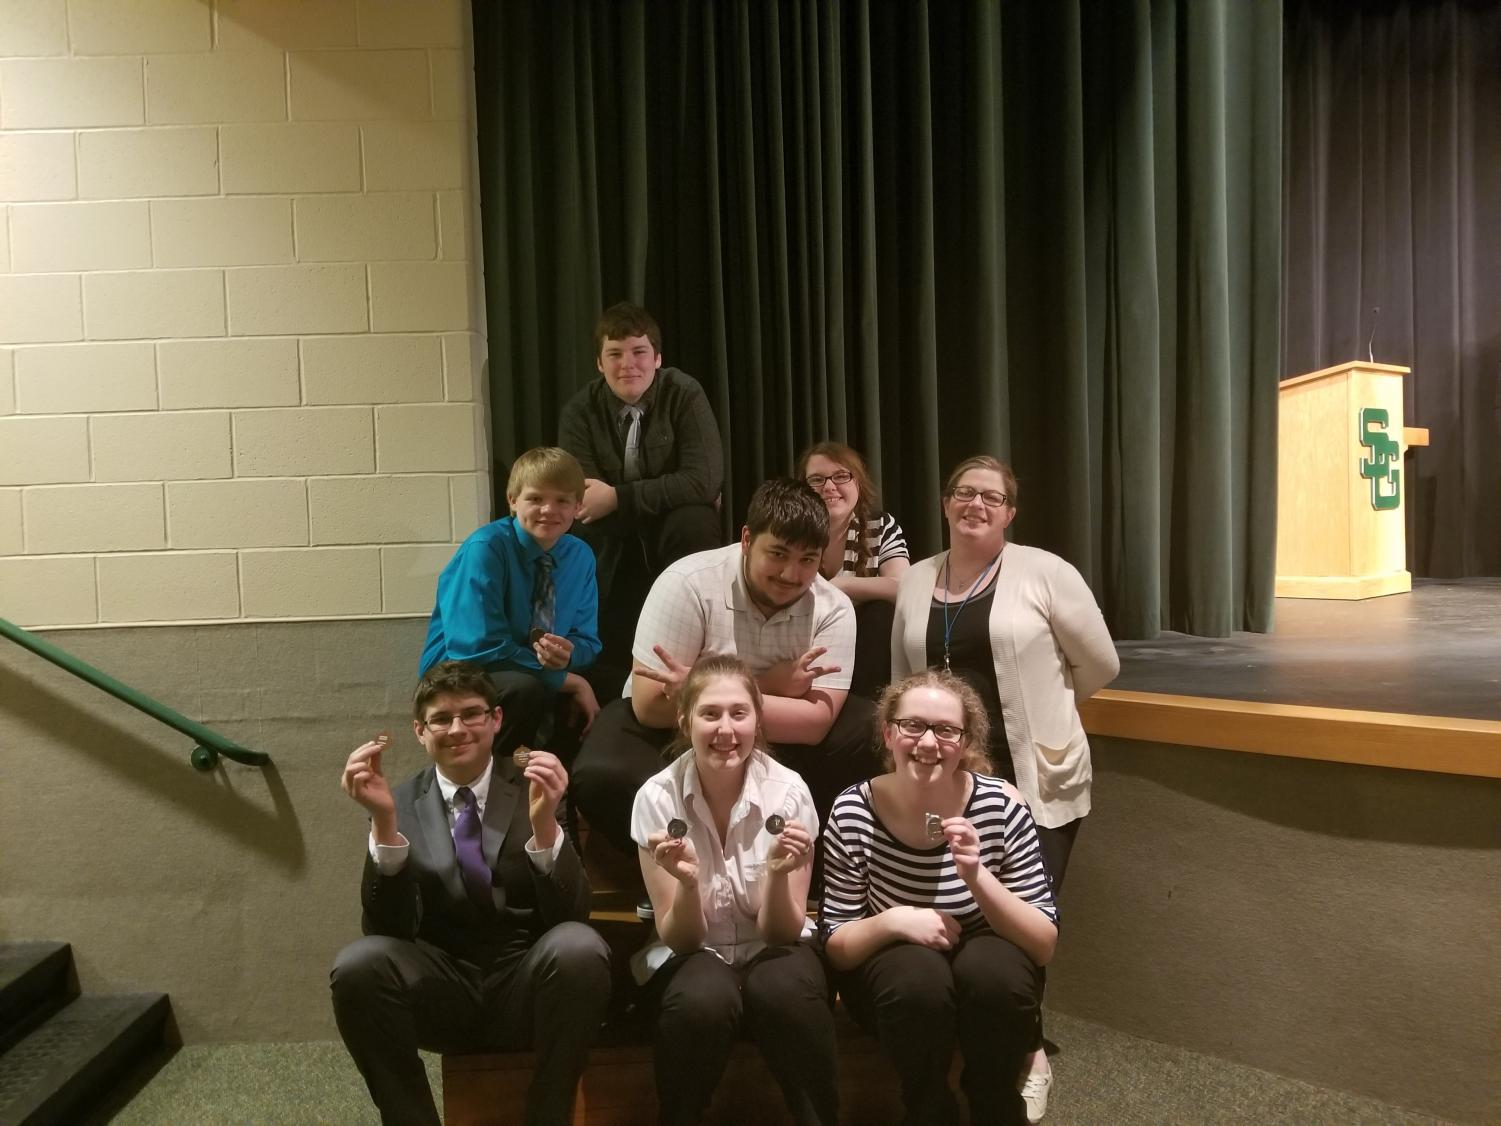 (From top left) Austin Williams, Mark Grogan, Sean Weinland, Alexis Russell, Whitney Crabtree (From bottom left) Matt Marlow, Terra Spradling, and Emily Livers are all on the speech team. Spradling qualified for the state meet that will take place this Saturday.